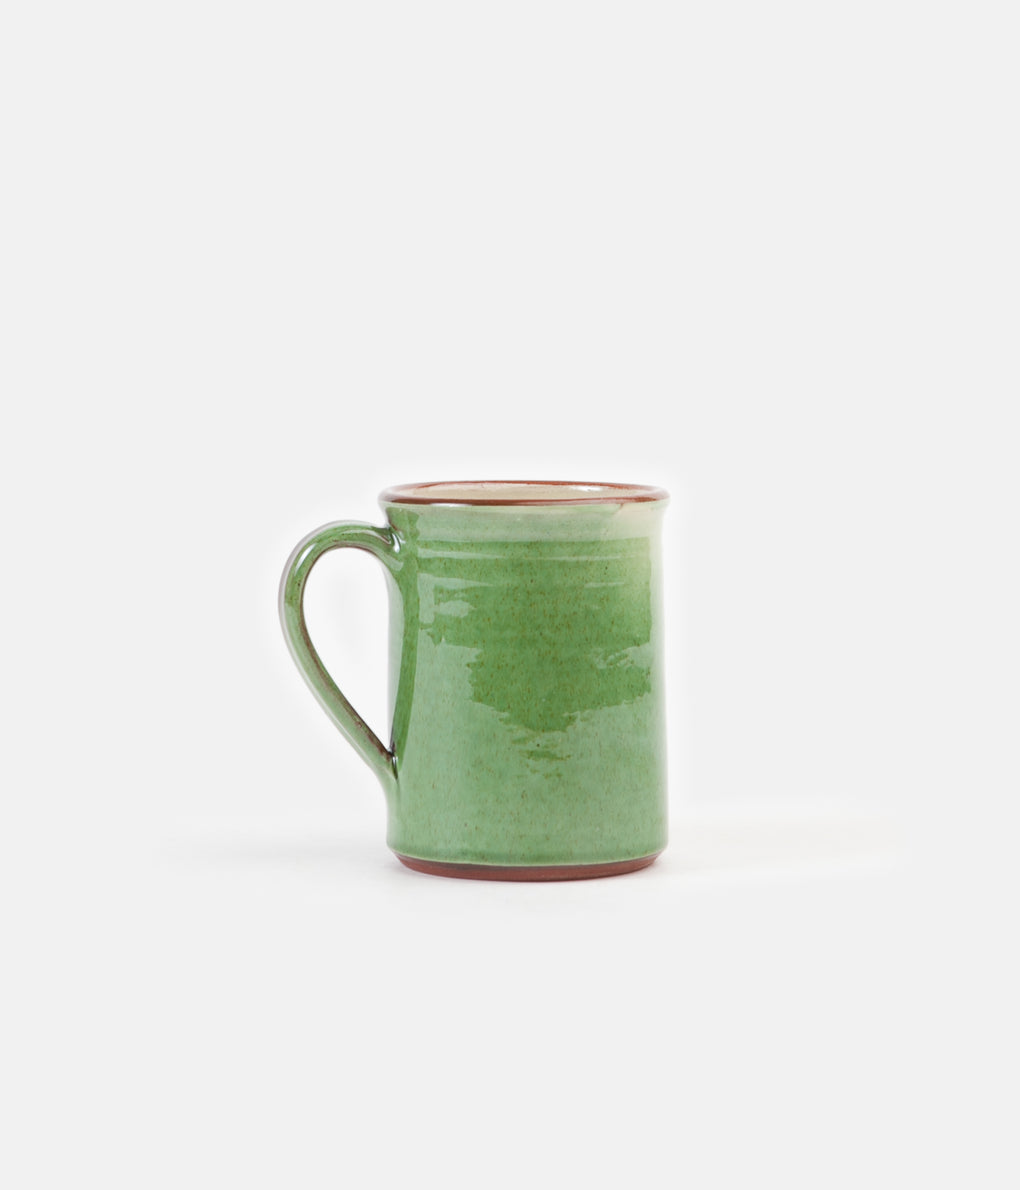 Tender Hand Thrown Natural Red Clay Coffee Mug - Green Glaze